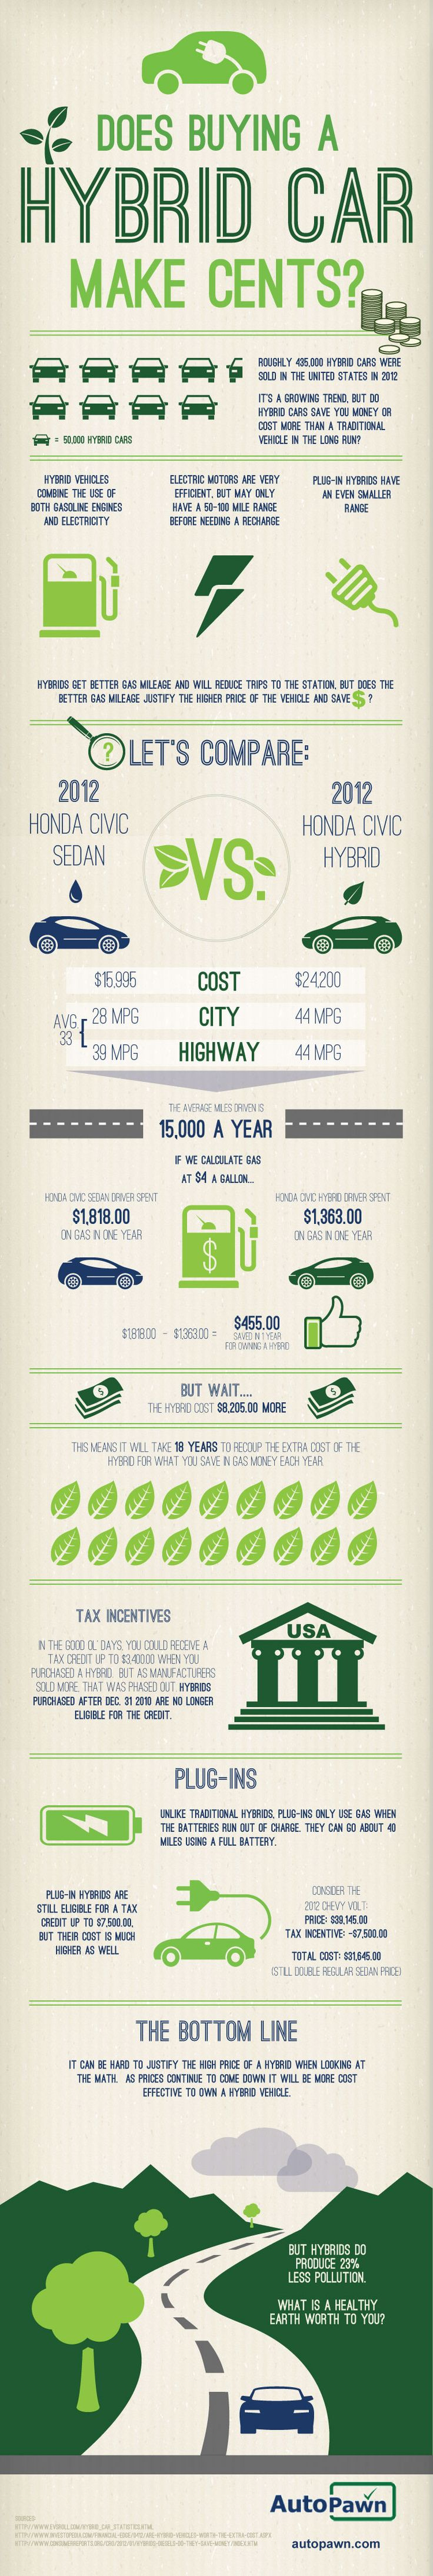 Does buying a hybrid car make sense - infographic http://www.greenerideal.com/vehicles/0616-the-cost-of-a-hybrid-car-vs-a-traditional-car-infographic/